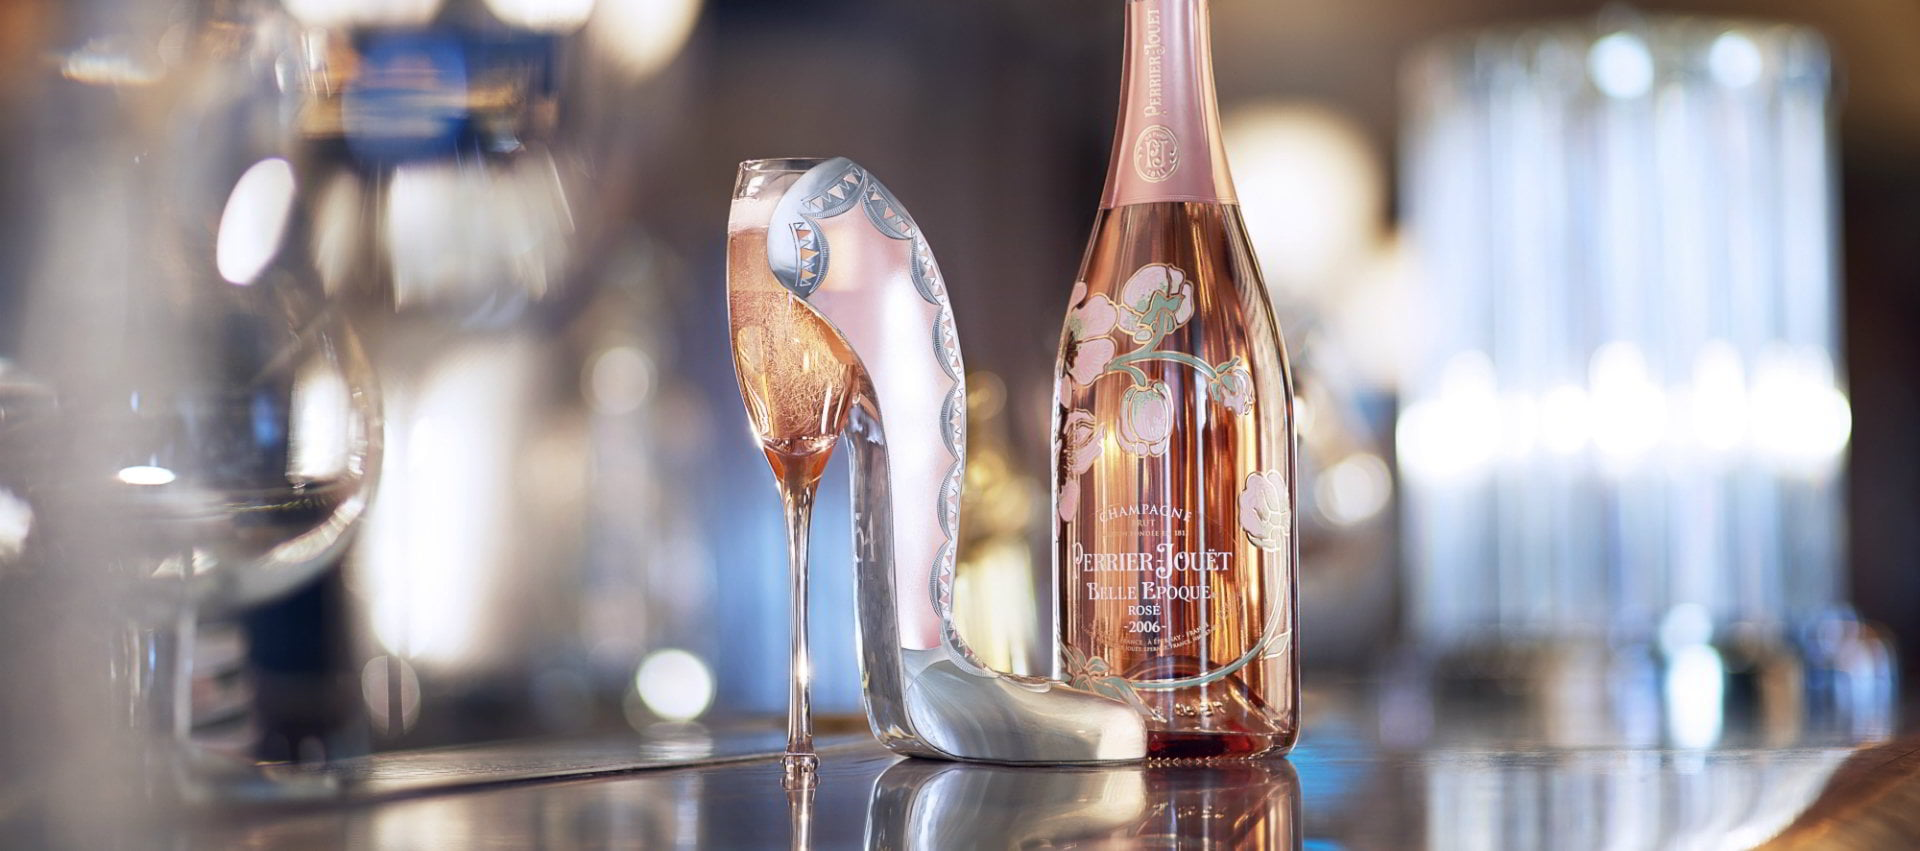 The Best Places For Champagne Cocktails in London